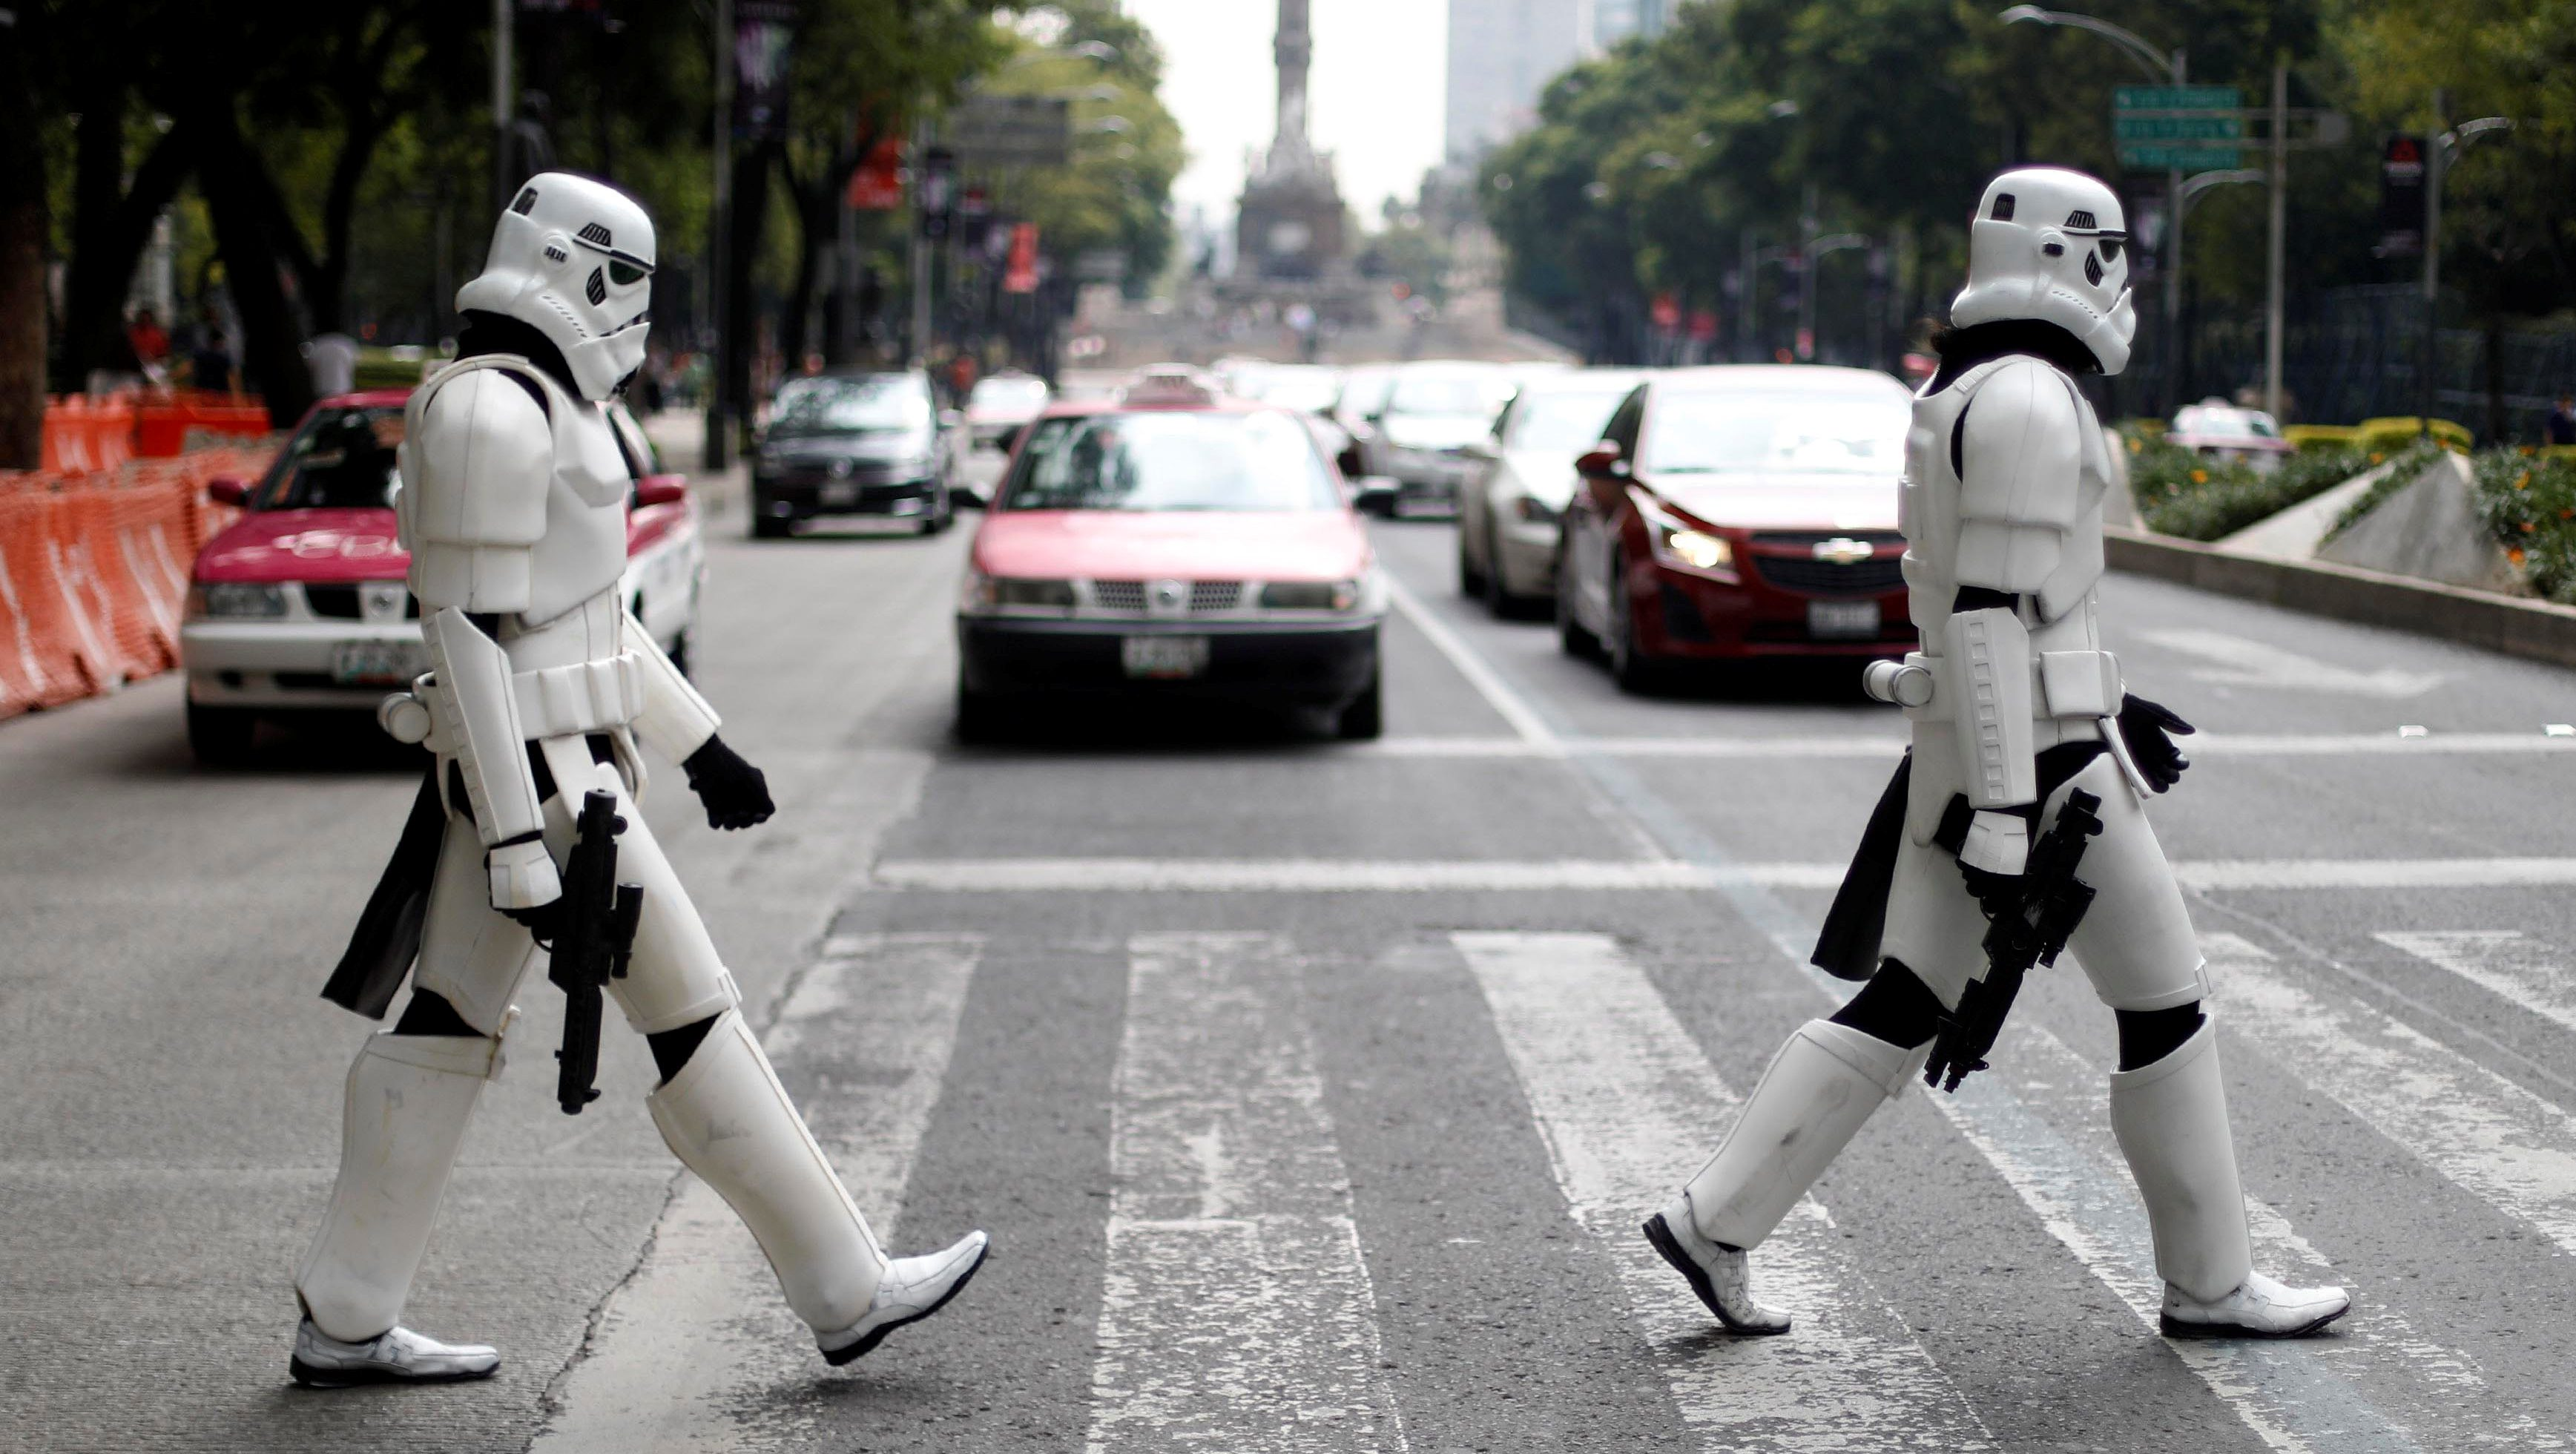 Two people dressed as Star Wars Storm Troopers cross Reforma Avenue in Mexico City, Mexico, August 26, 2017.